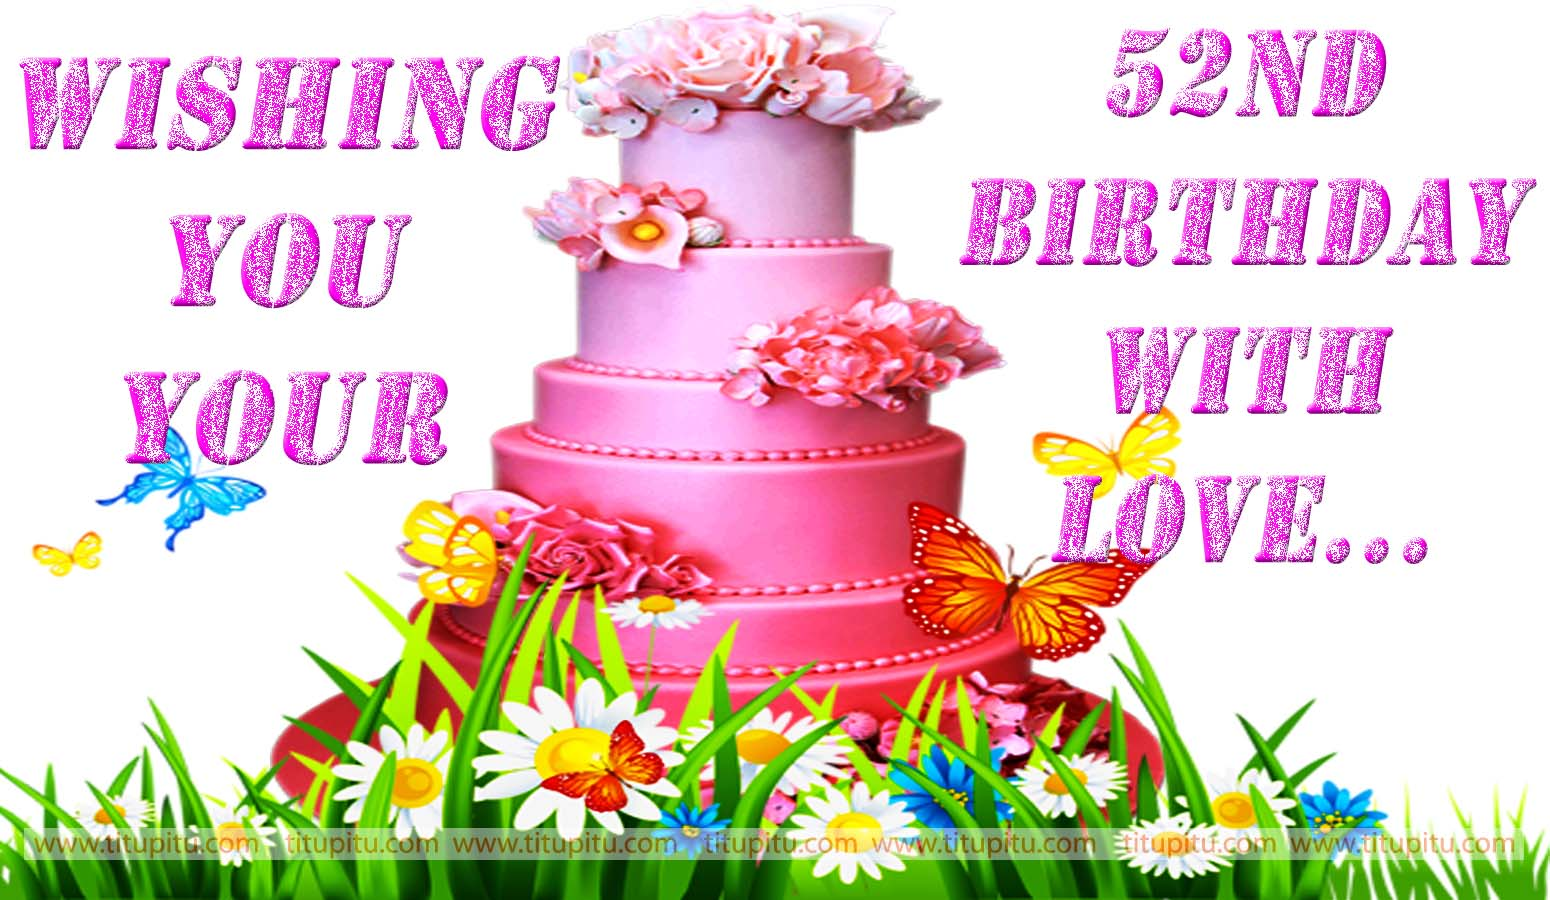 52nd Birthday Wishes Message And Wallpaper For Everyone